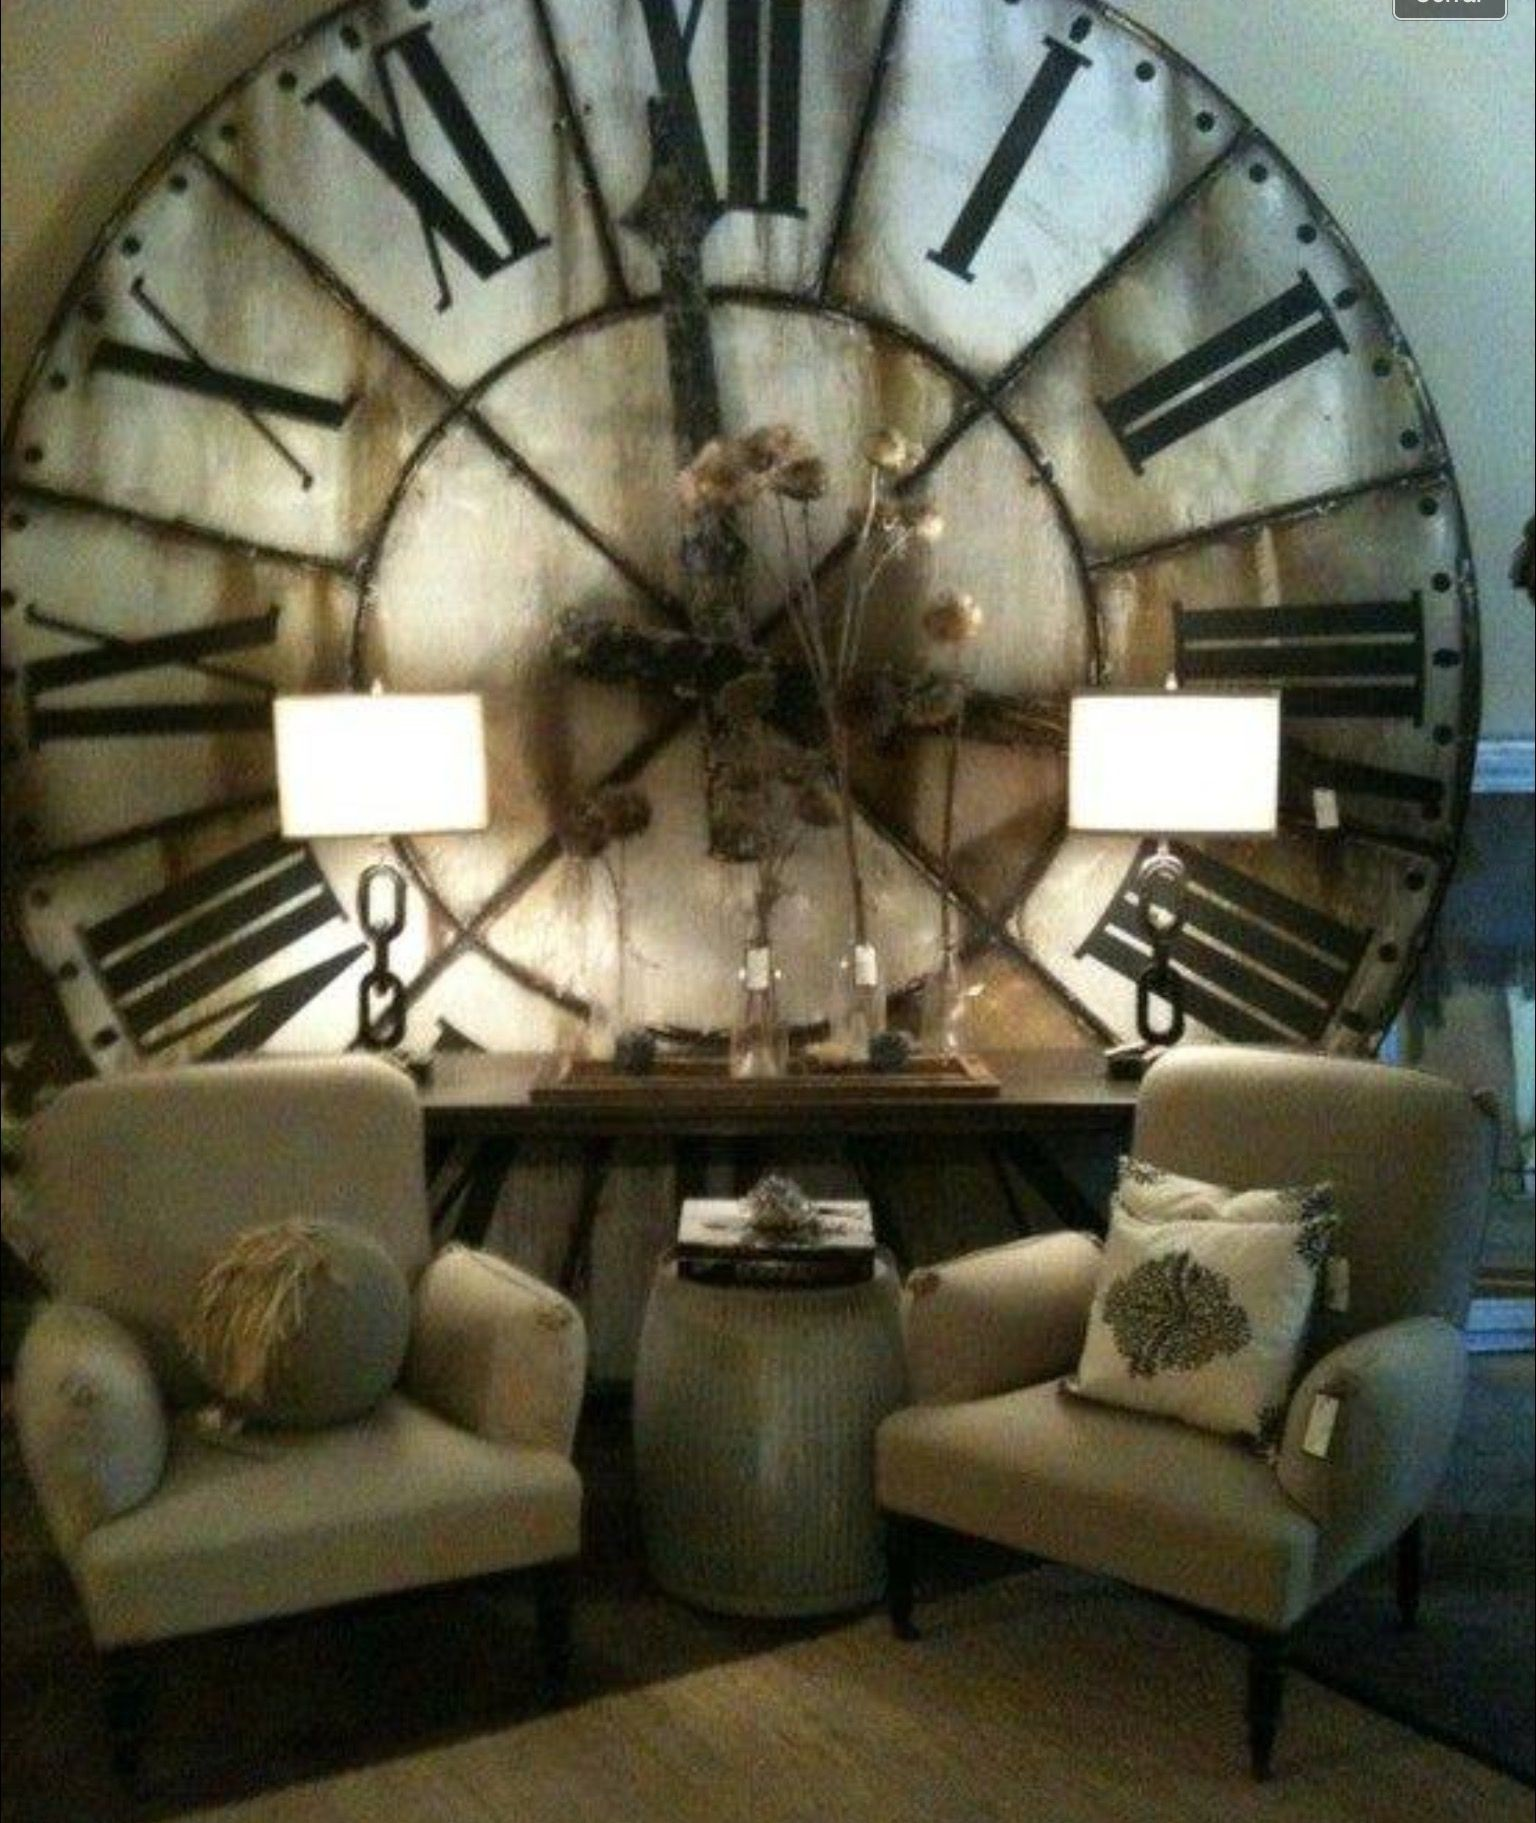 Large office wall clocks Entryway Over Sized Wall Clocks Foter 100 Large Digital Wall Clock Ideas On Foter